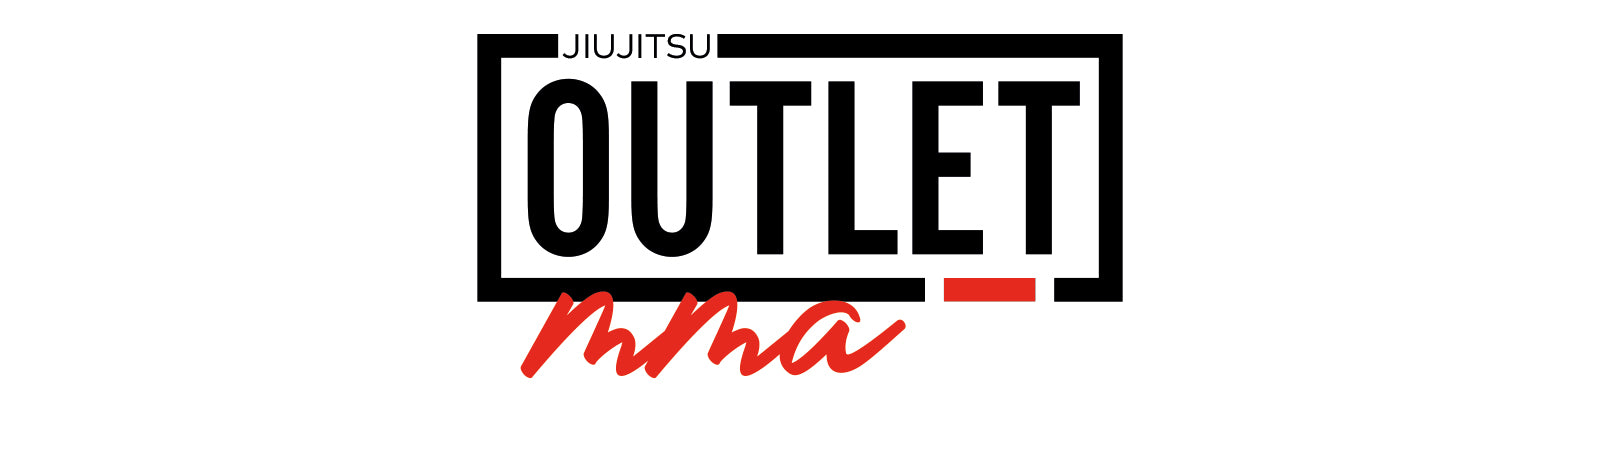 Boxing /MMA Outlet